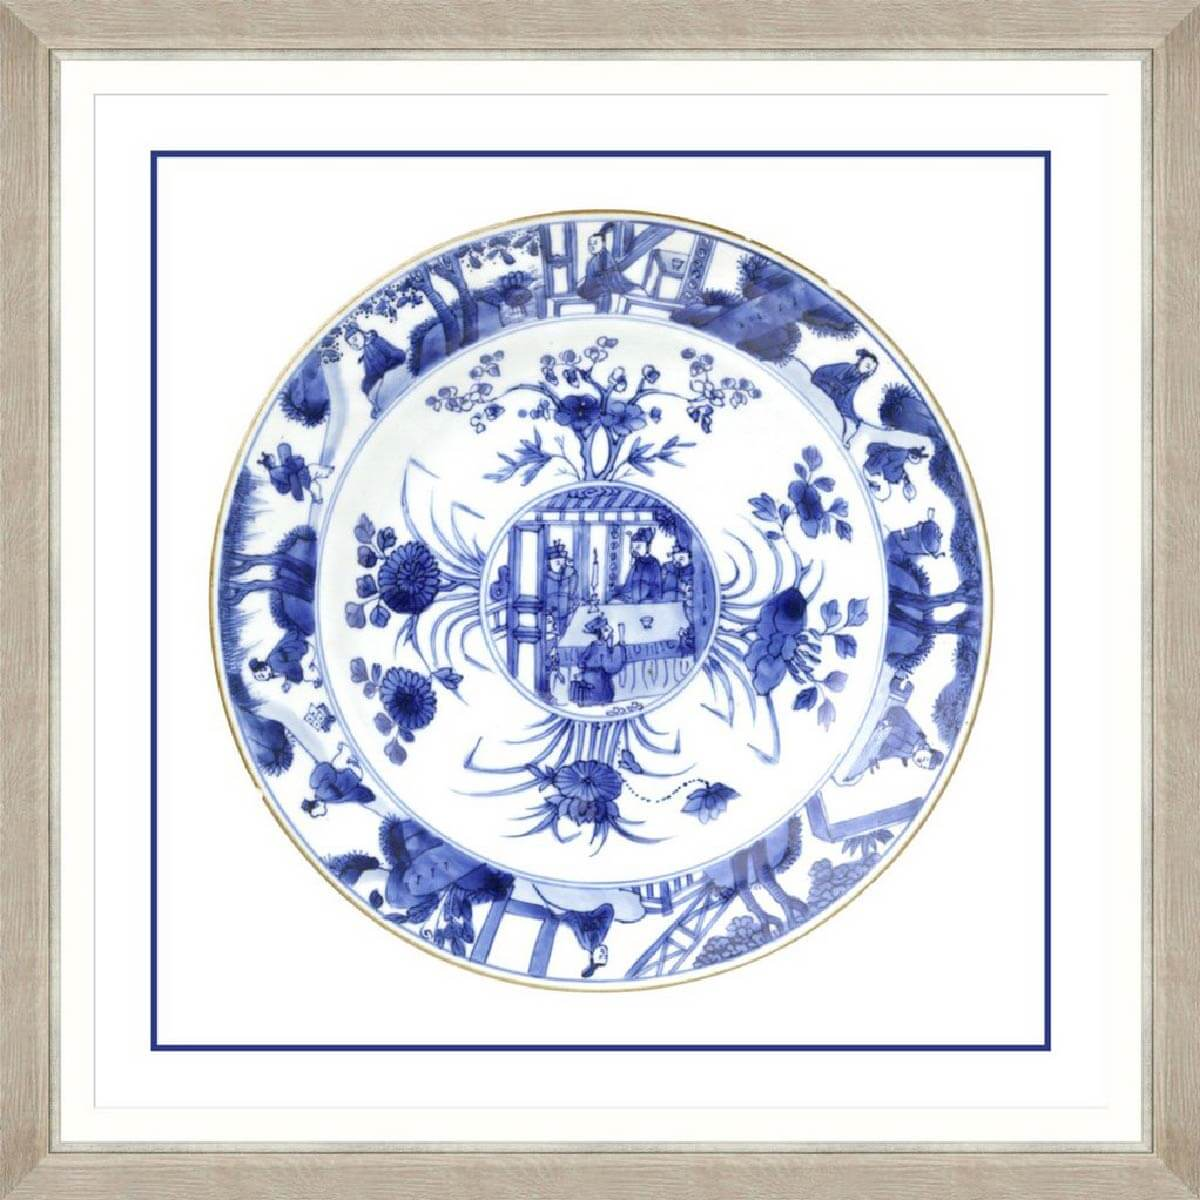 China-Imperial-1-Framed-Art